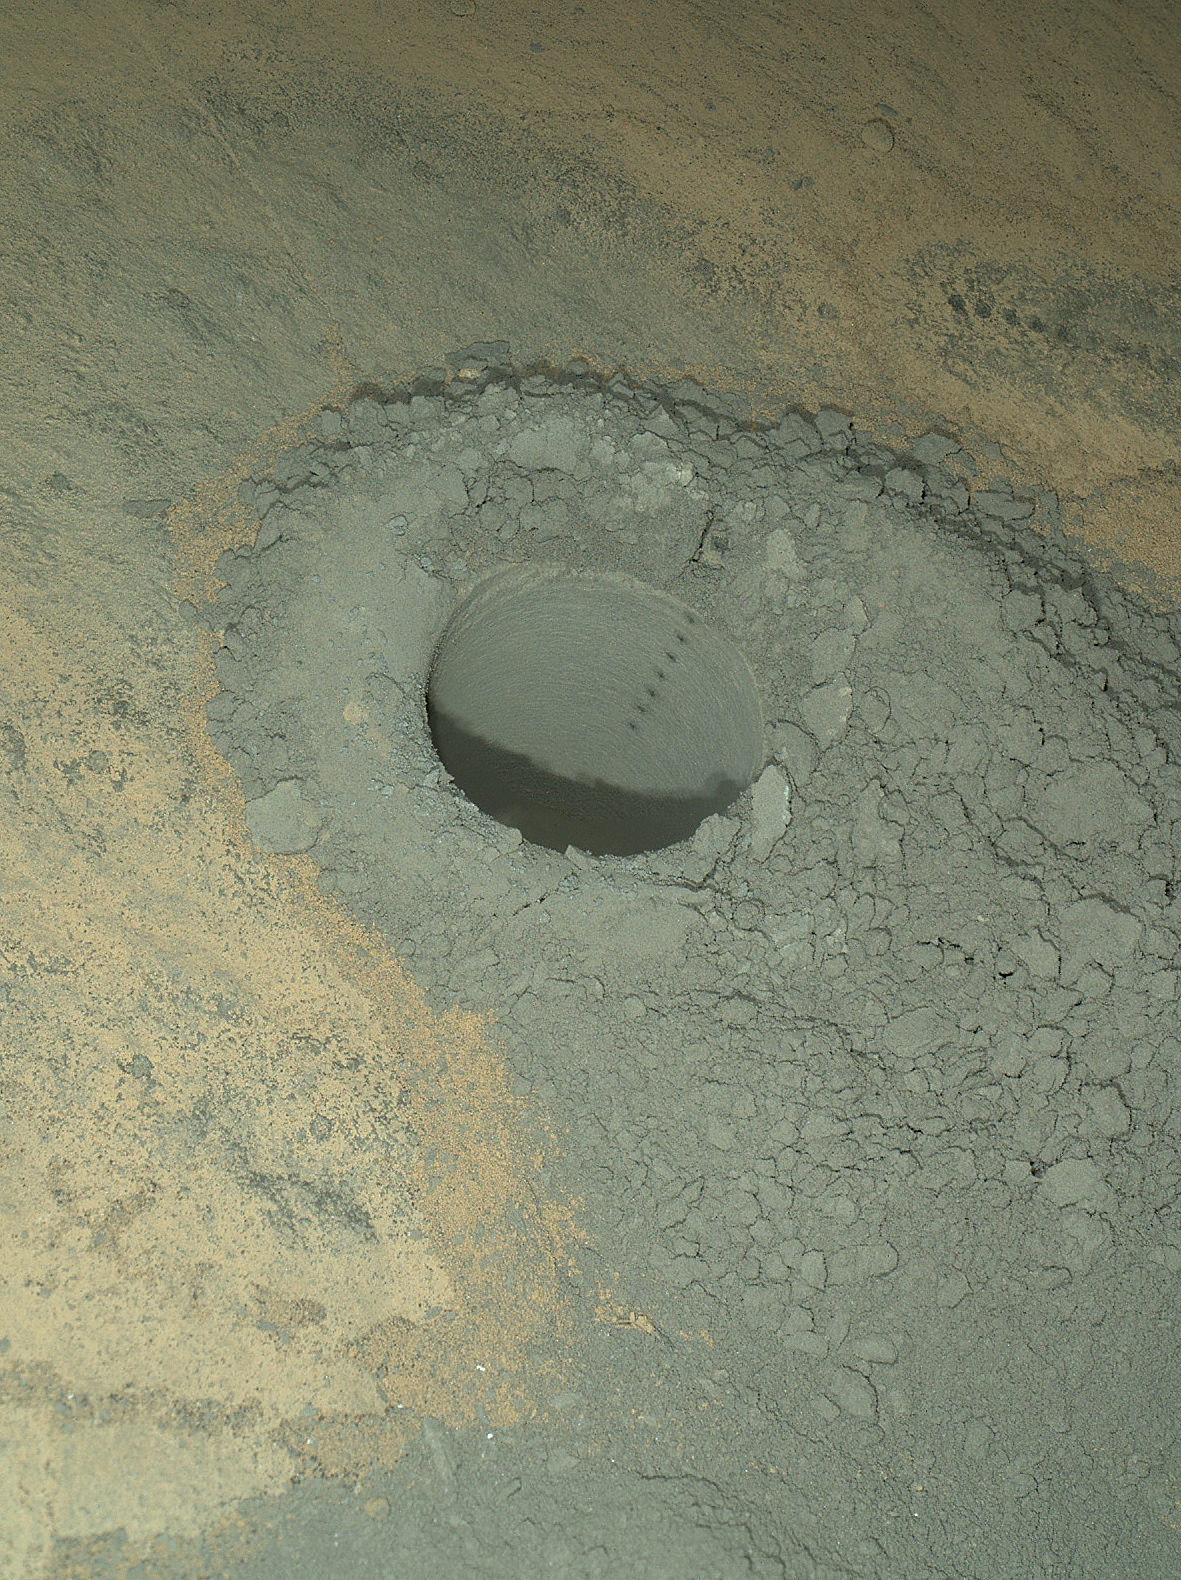 The Mars Hand Lens Imager on NASA's Curiosity Mars rover provided this nighttime view of a hole produced by the rover's drill and, inside the hole, a line of scars produced by the rover's rock-zapping laser. The hole is 0.63 inch (1.6 centimeters) in diameter.  The camera used its own white-light LEDs to illuminate the scene on May 13, 2014.  Credit:  NASA/JPL-Caltech/MSSS